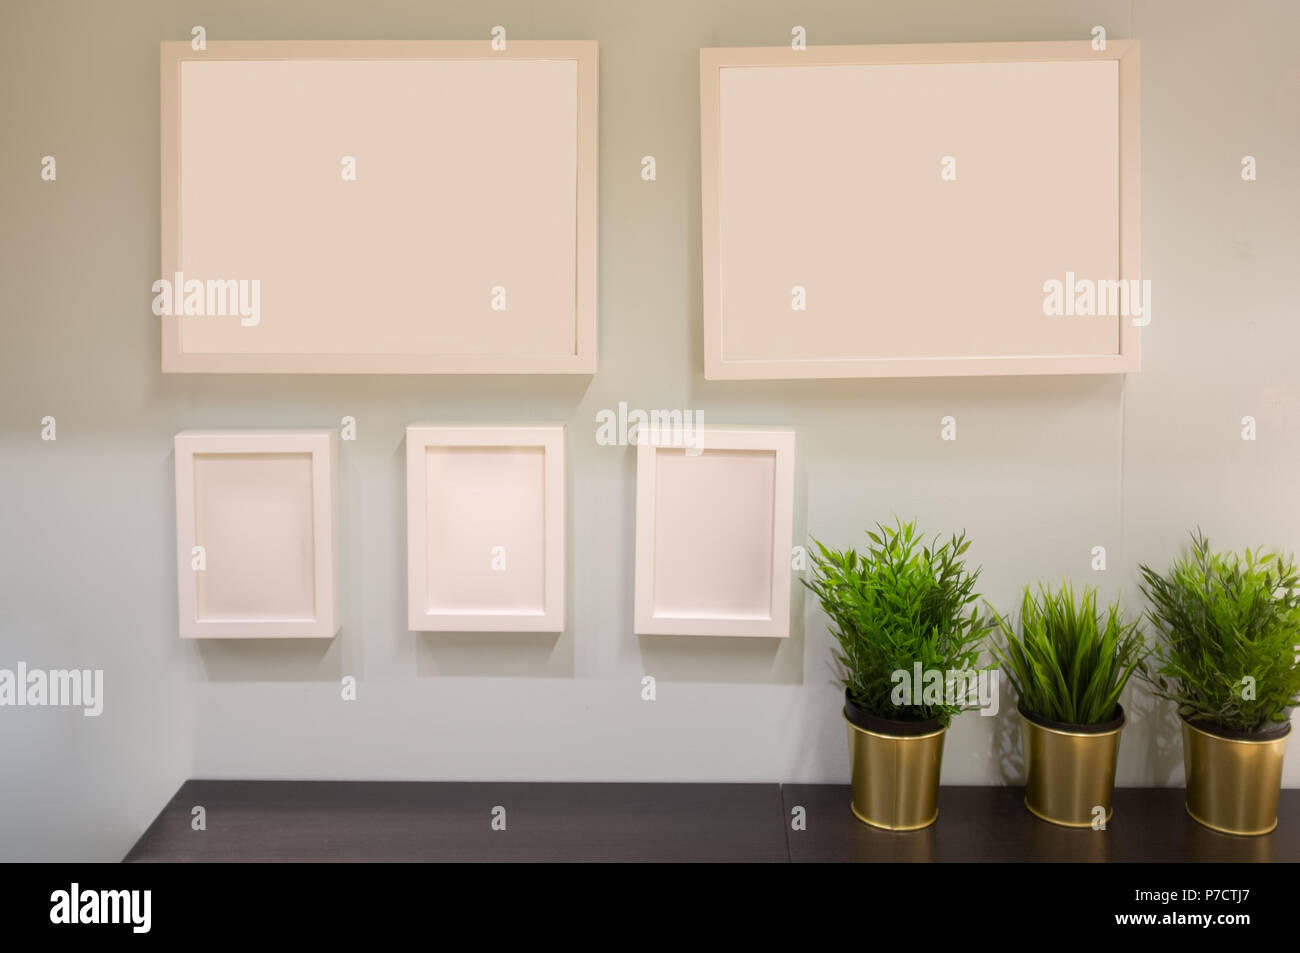 Five picture frames arranged on a wall with copy space - Stock Image